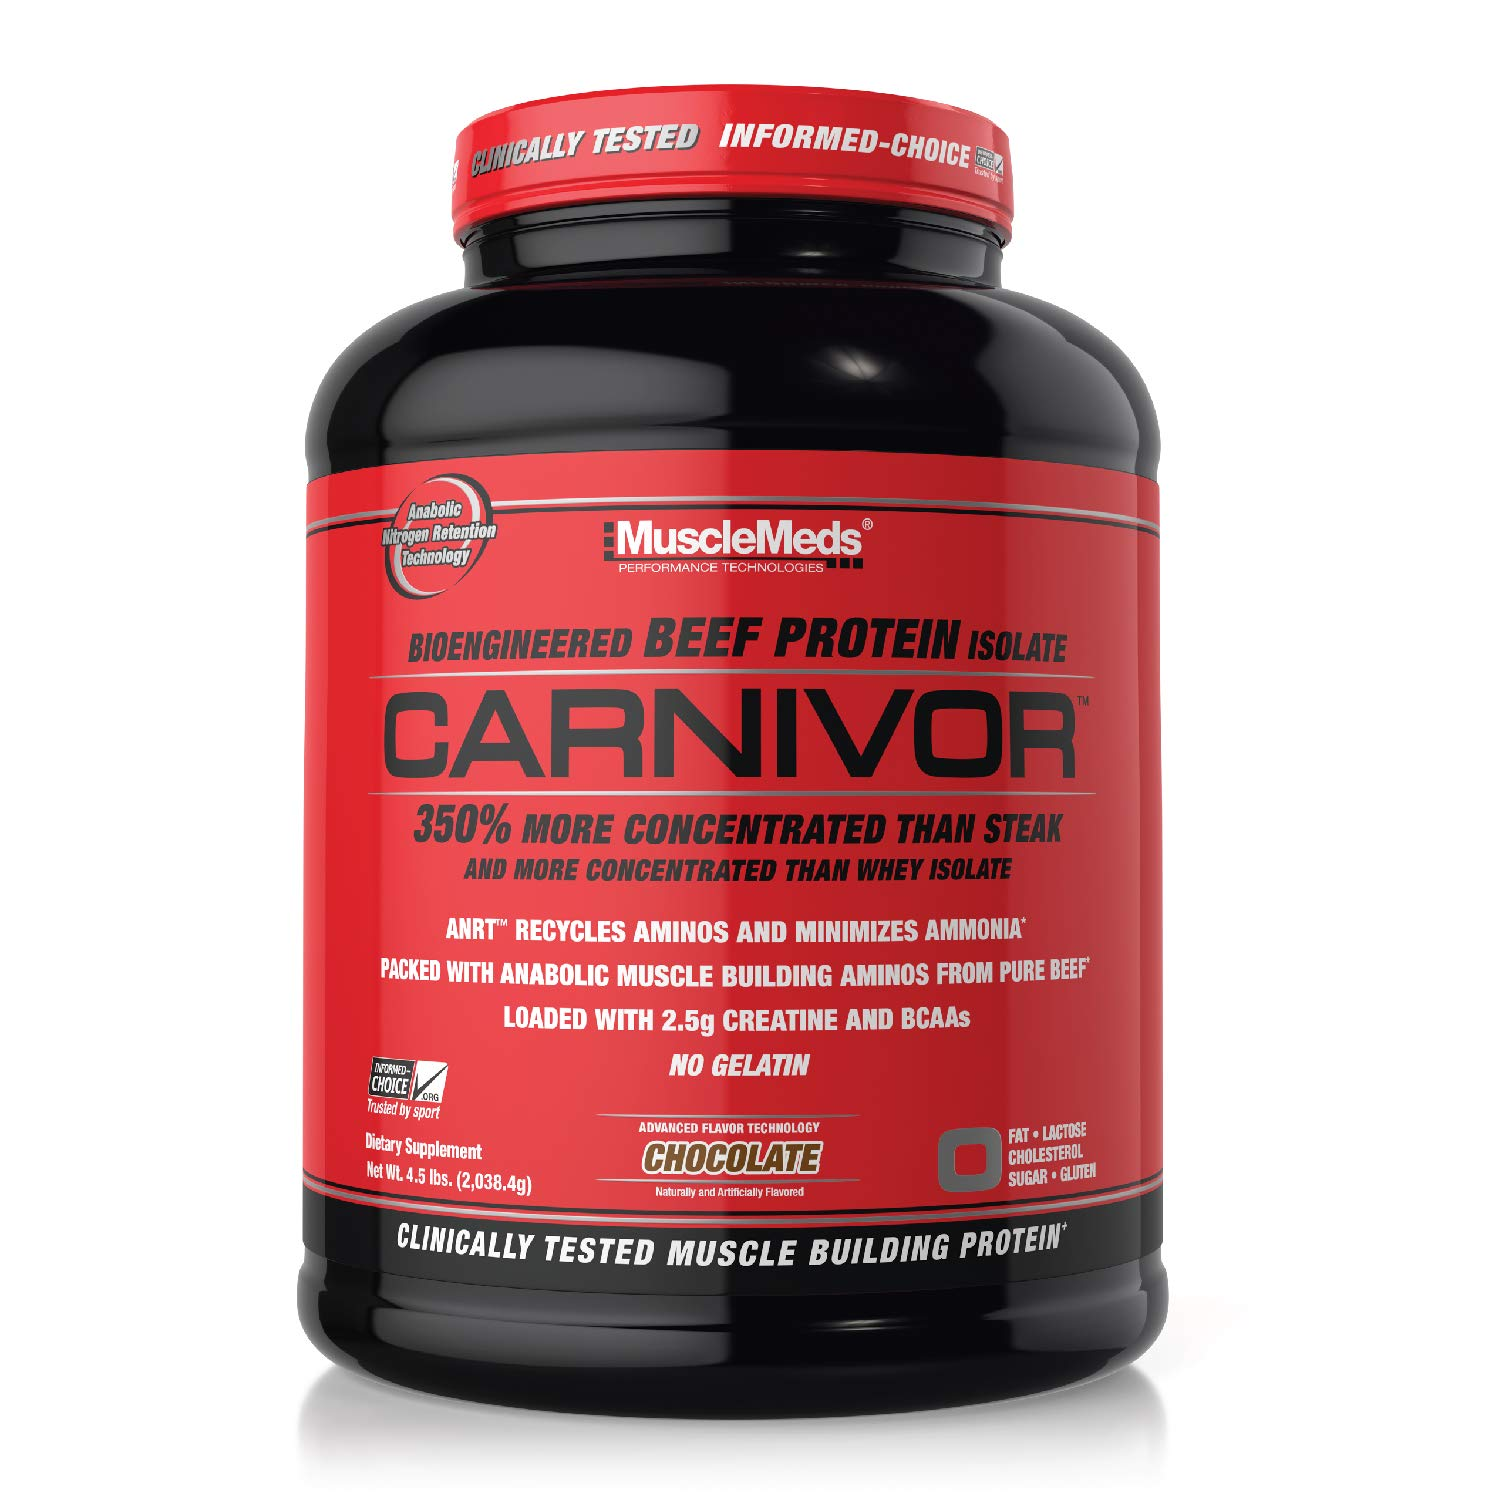 MuscleMeds Carnivor Beef Protein Isolate Powder, Chocolate, 56 Servings by MuscleMeds